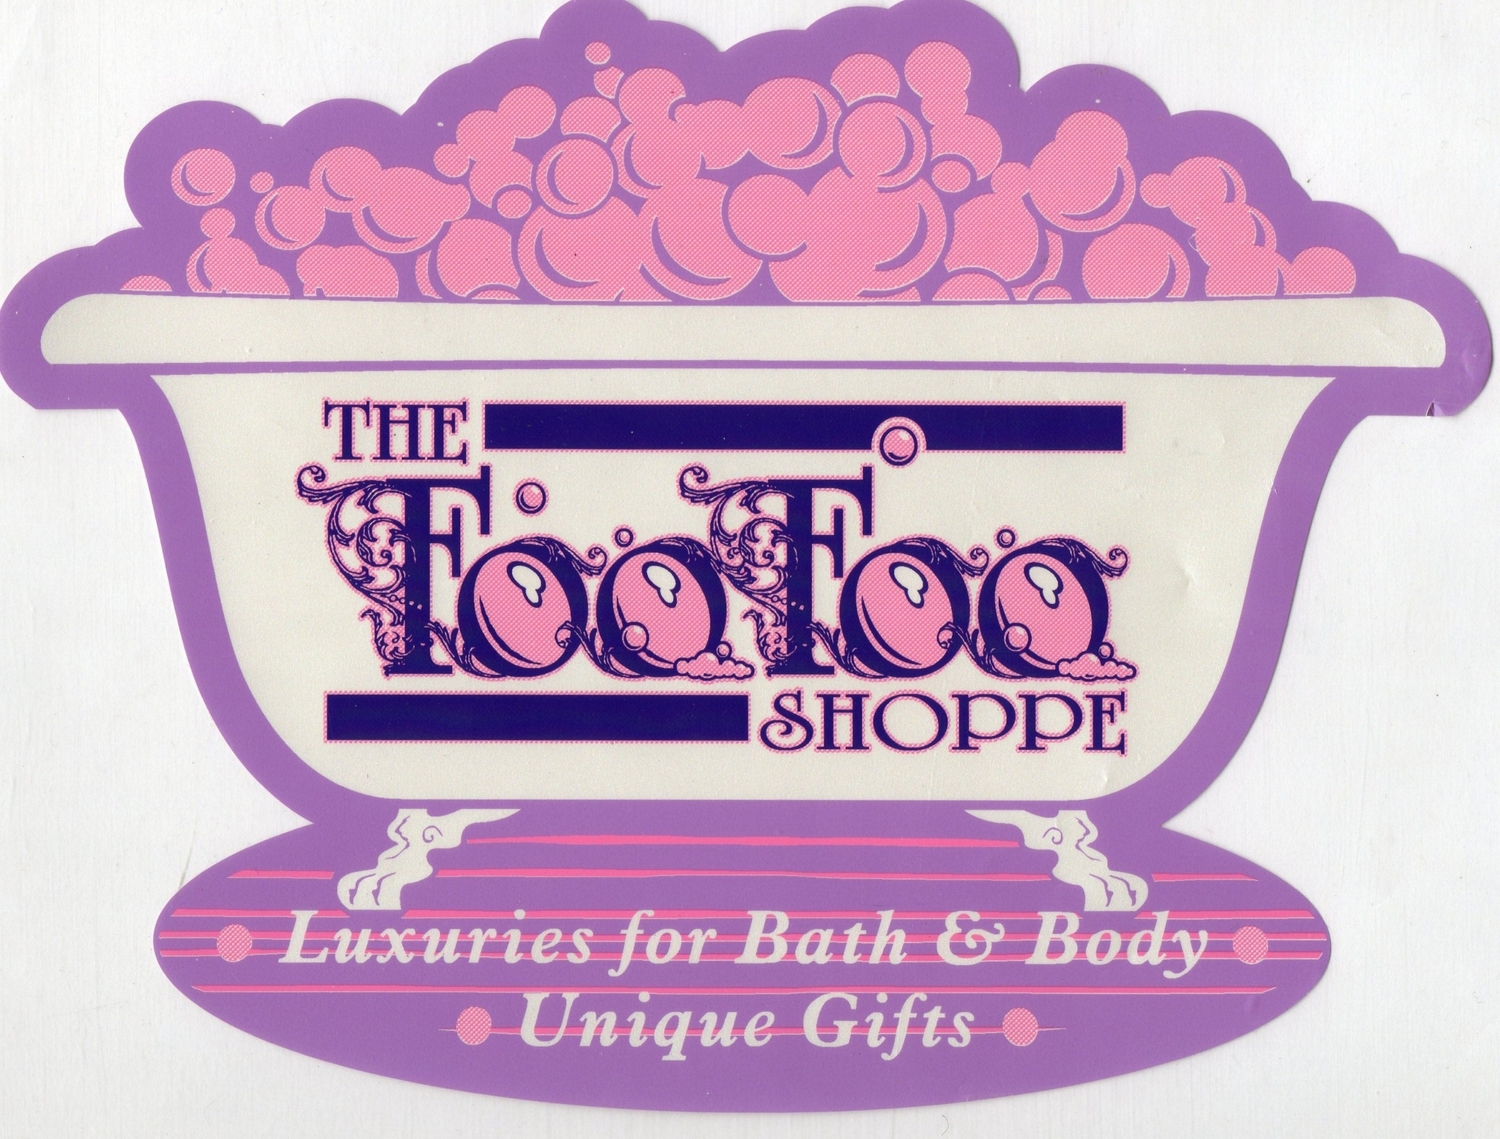 The Foo Foo Shoppe